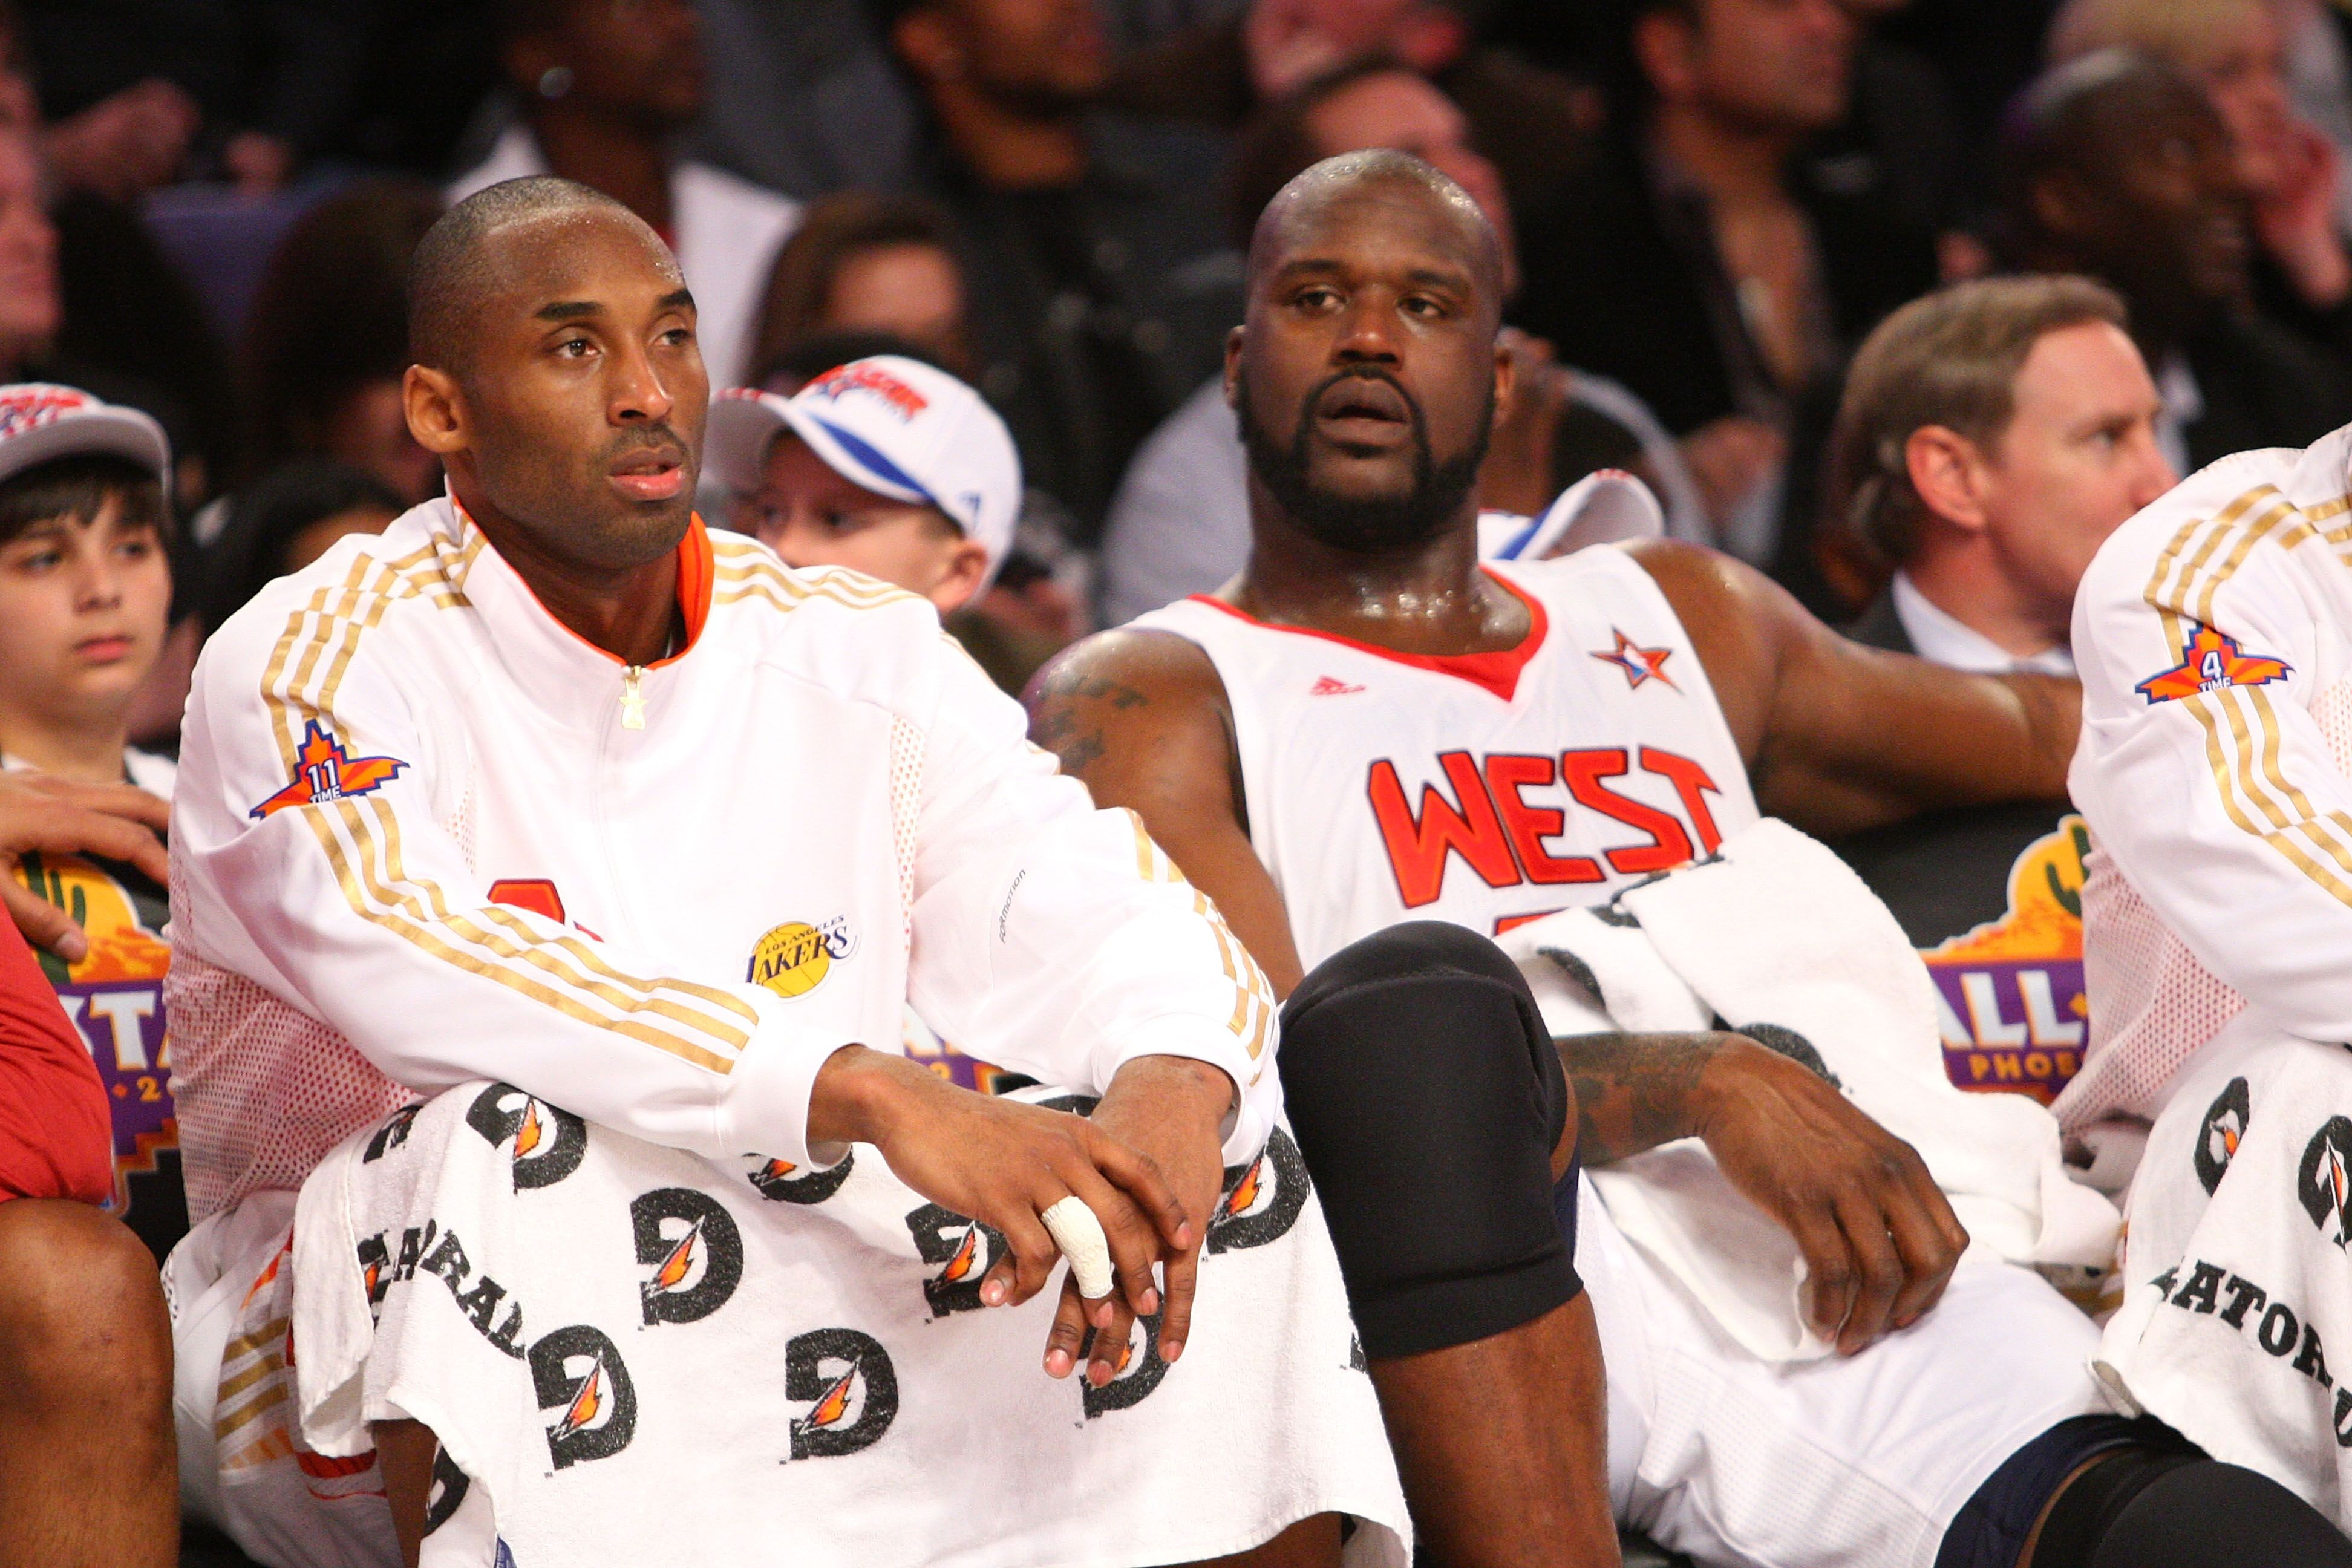 Shaquille O'Neal and Kobe Bryant at the 2009 NBA All-Star Game/ Source: Getty Images